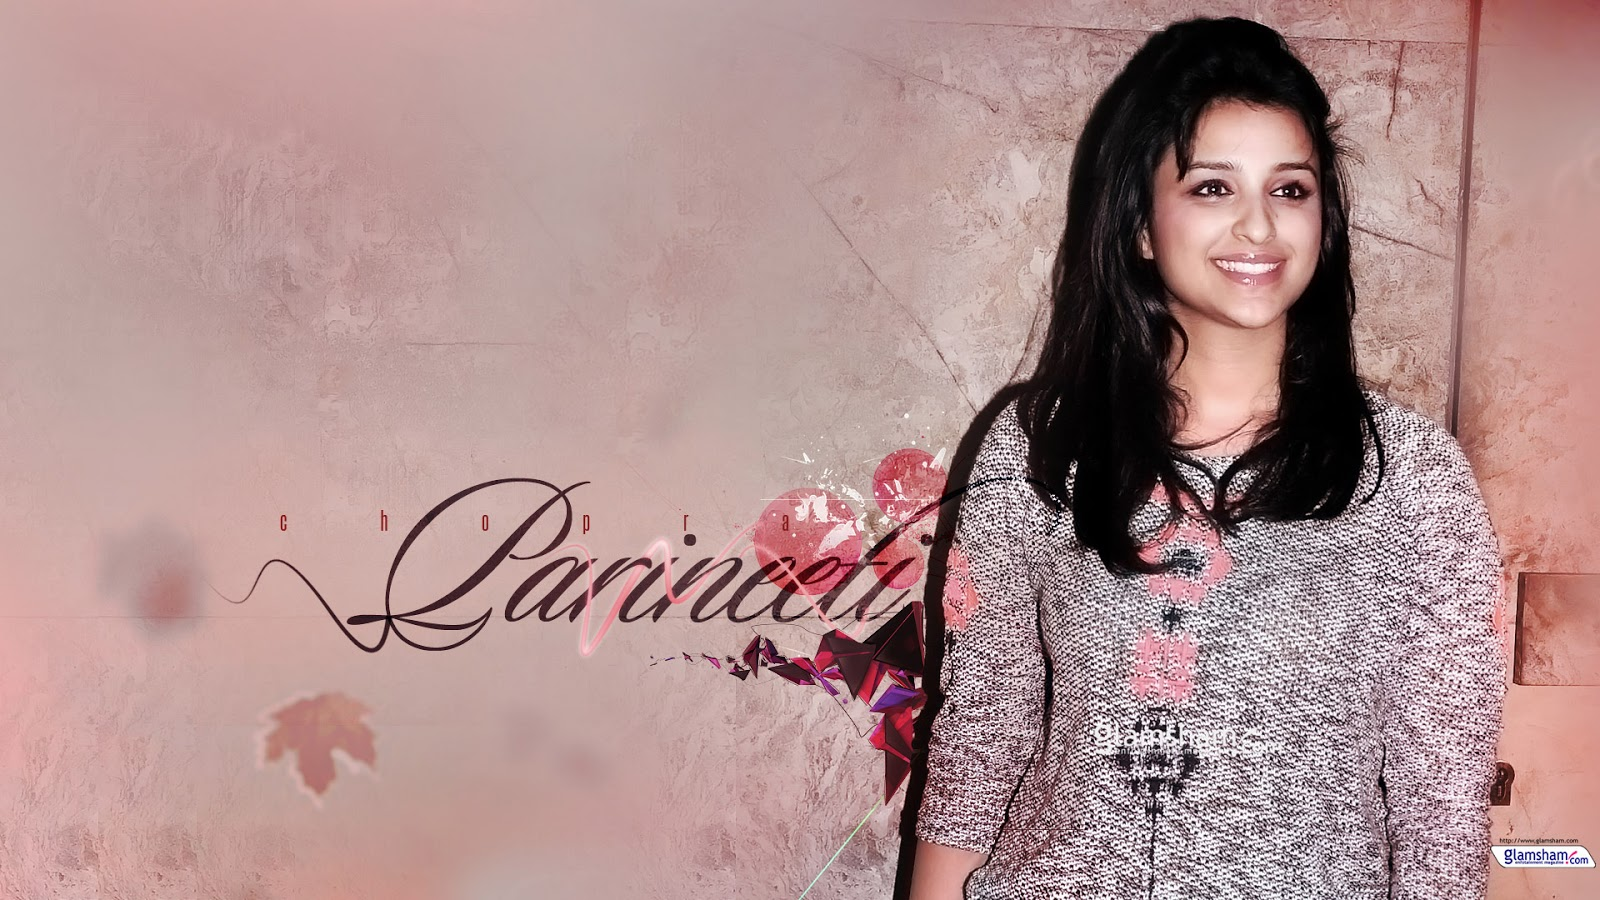 4k ultra hd wallpaper parineeti chopra hd wallpapers - Parineeti chopra wallpapers for iphone ...